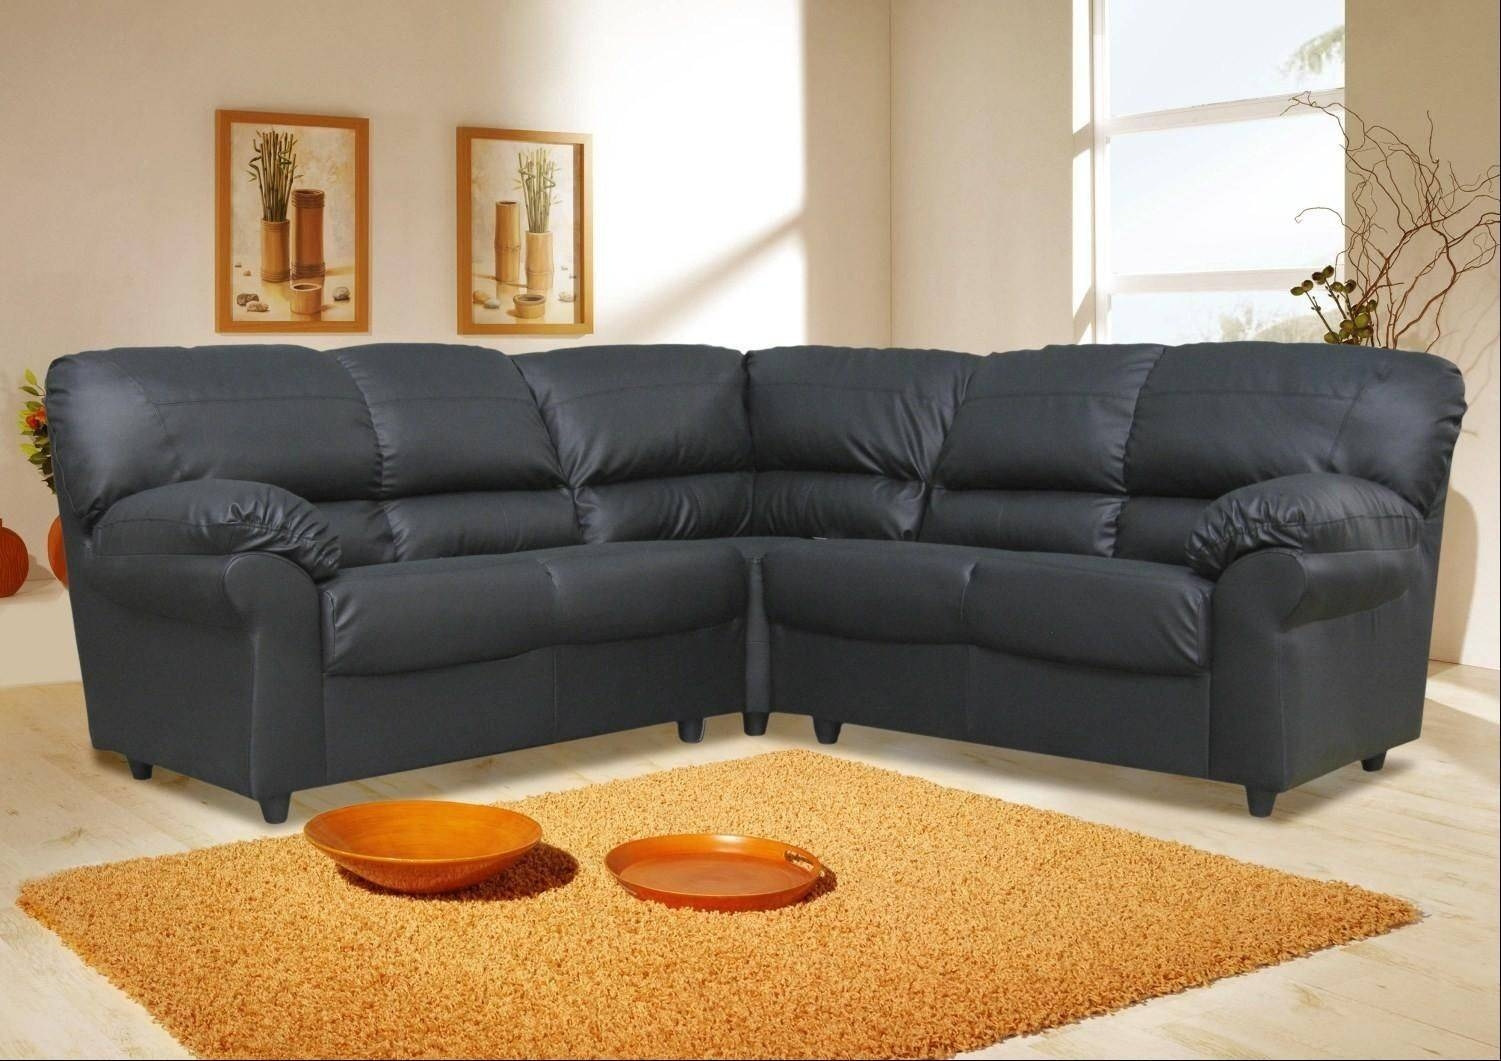 Sofas Center : Leather Corner Sofa Striking Photos Concept Sofas Pertaining To Small Brown Leather Corner Sofas (View 21 of 30)